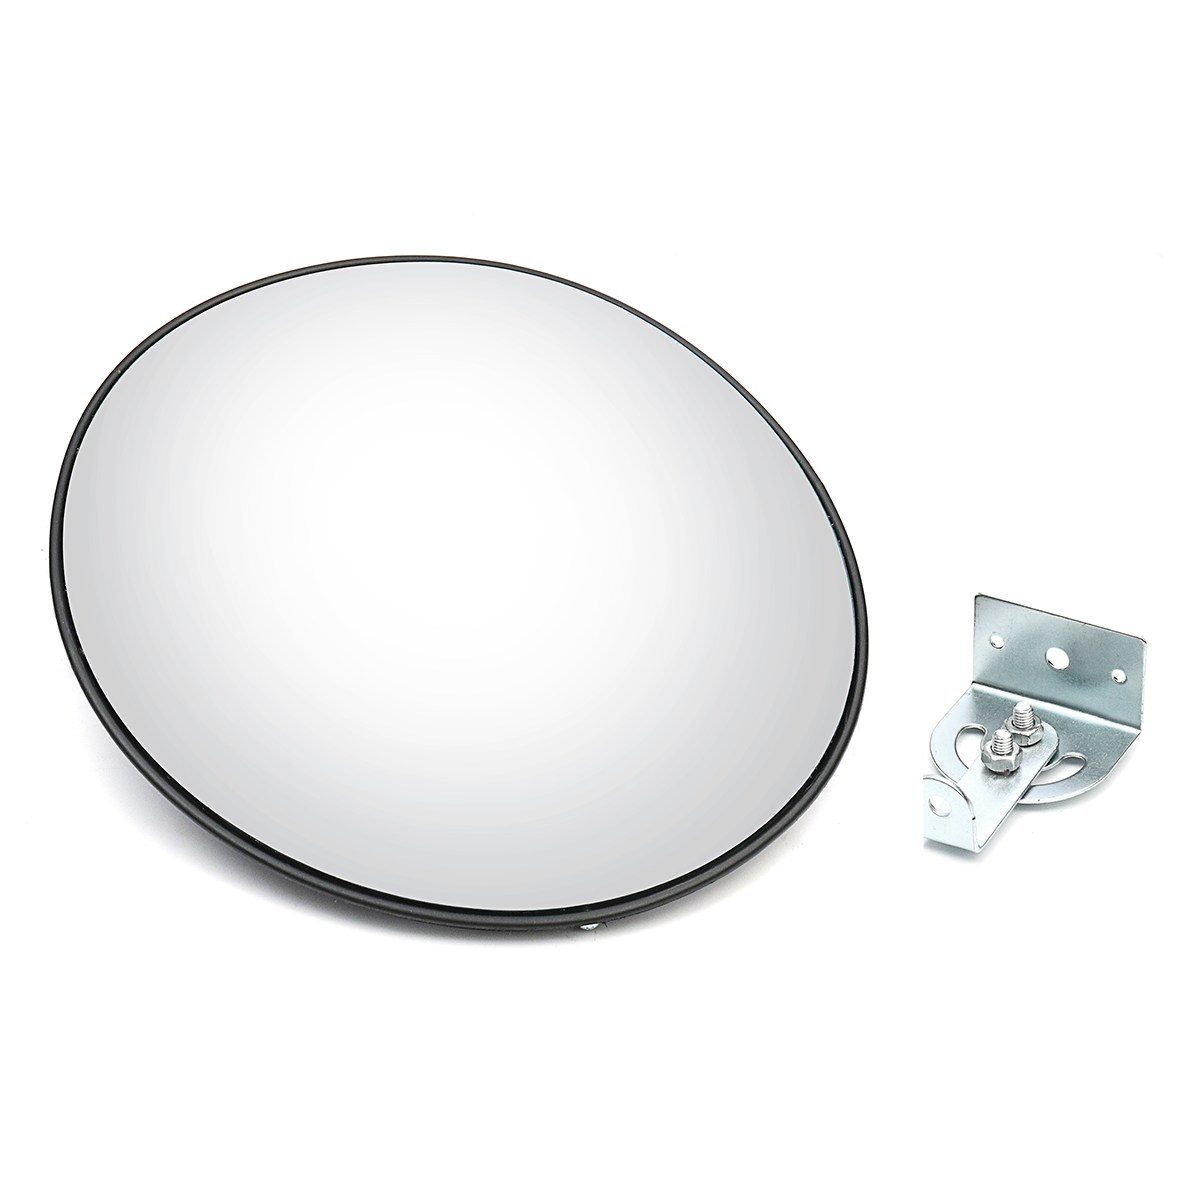 NEW Safurance 30cm Wide Angle Curved Convex Security Road Mirror For Indoor Burglar Traffic Signal Roadway Safety